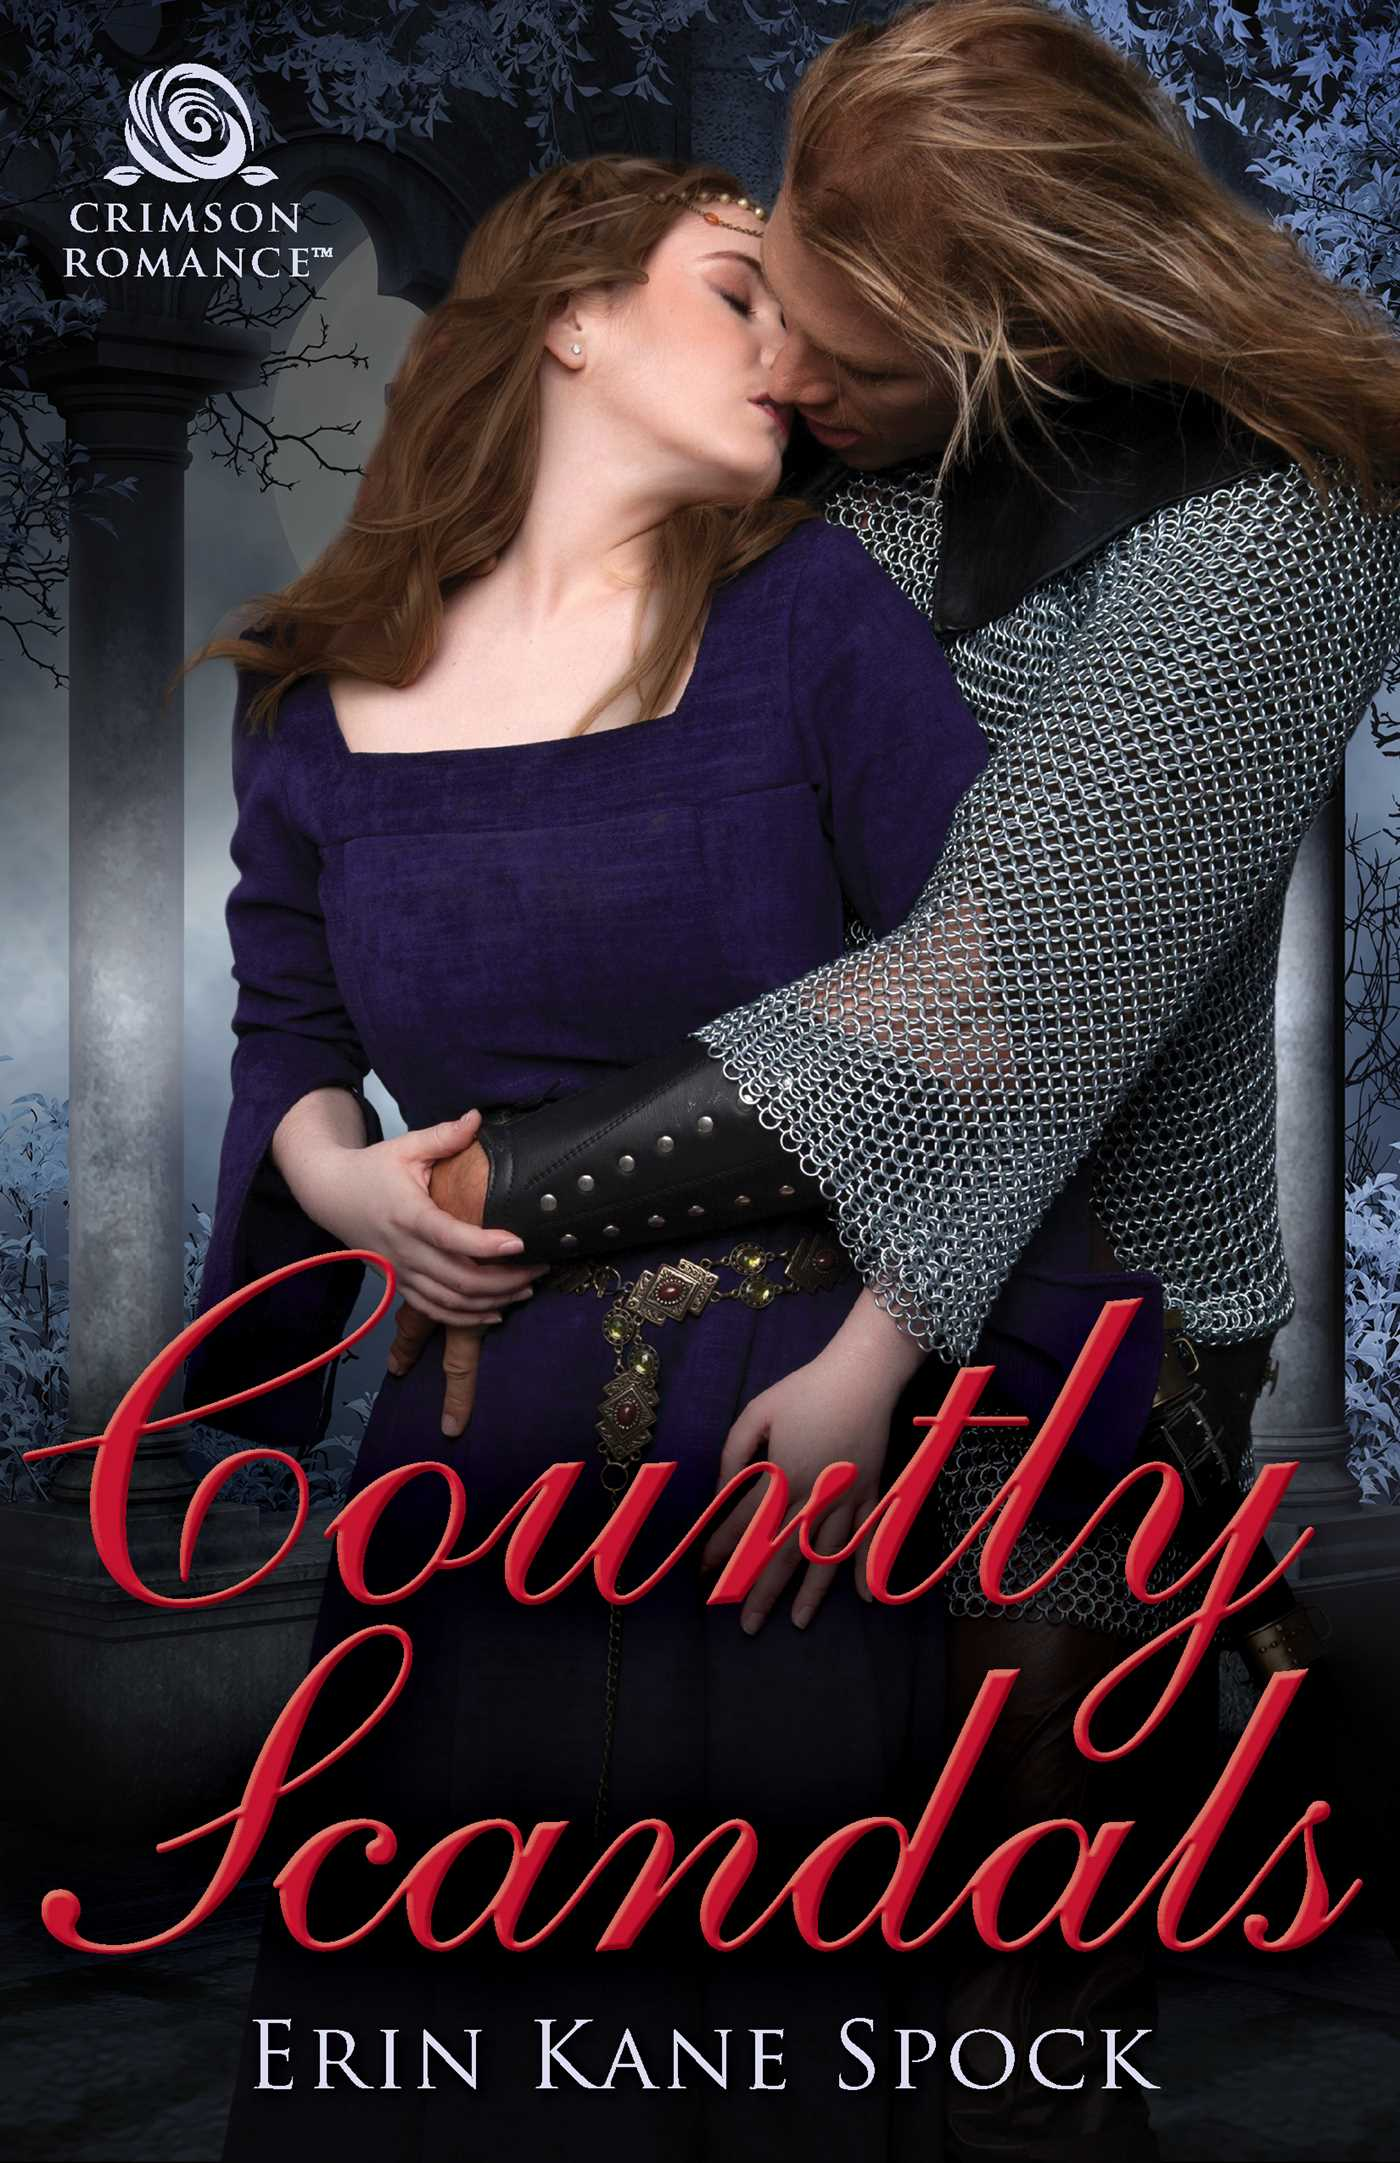 Courtly scandals 9781507208298 hr